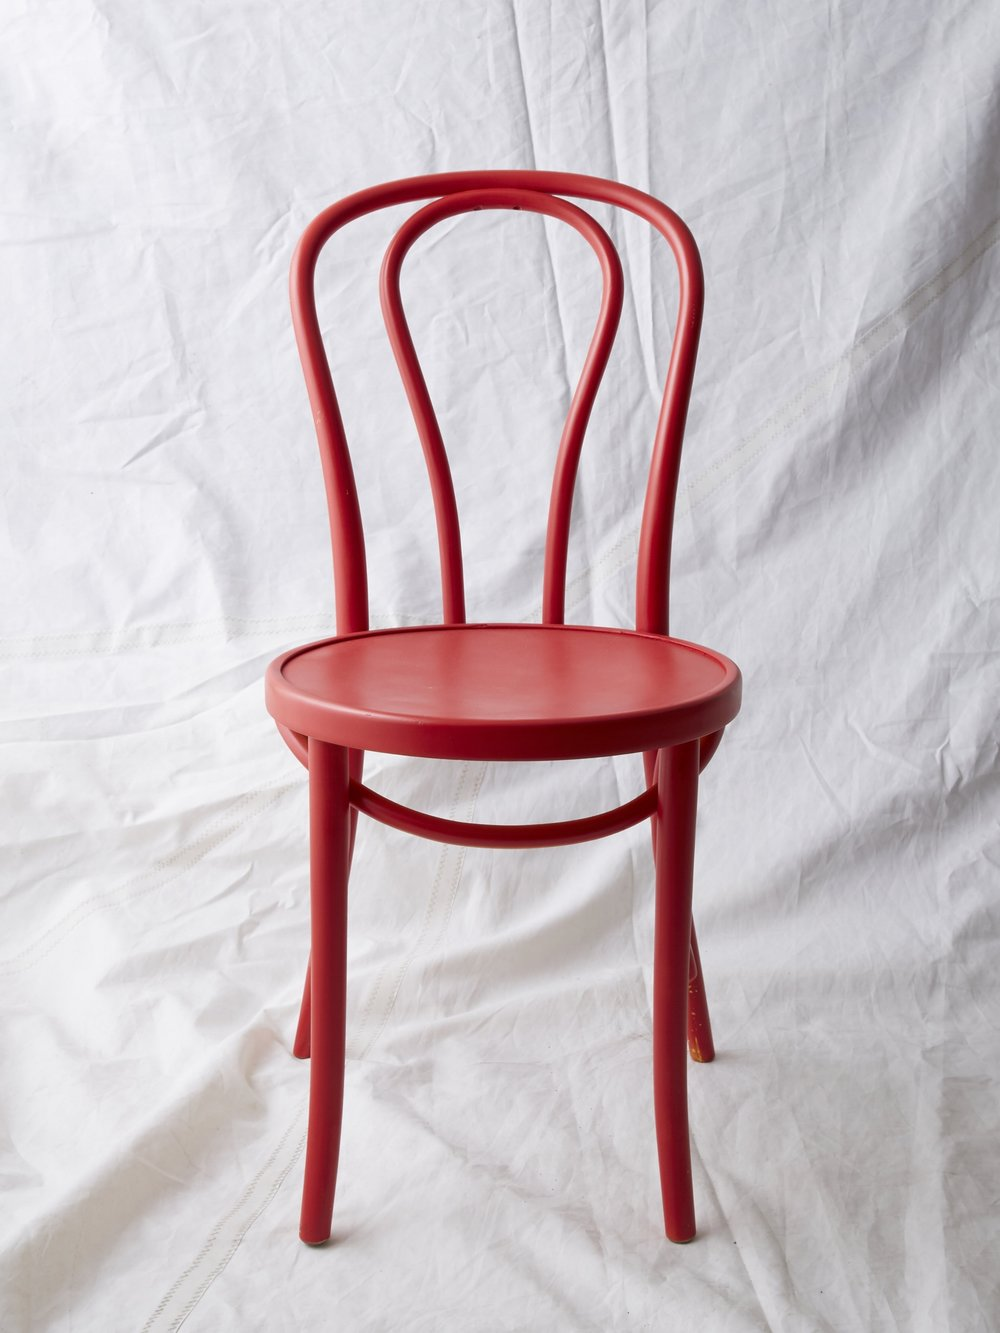 """CH024 Red painted Thonet chair 35"""" H x 16"""" W x 20"""" D $75/week"""